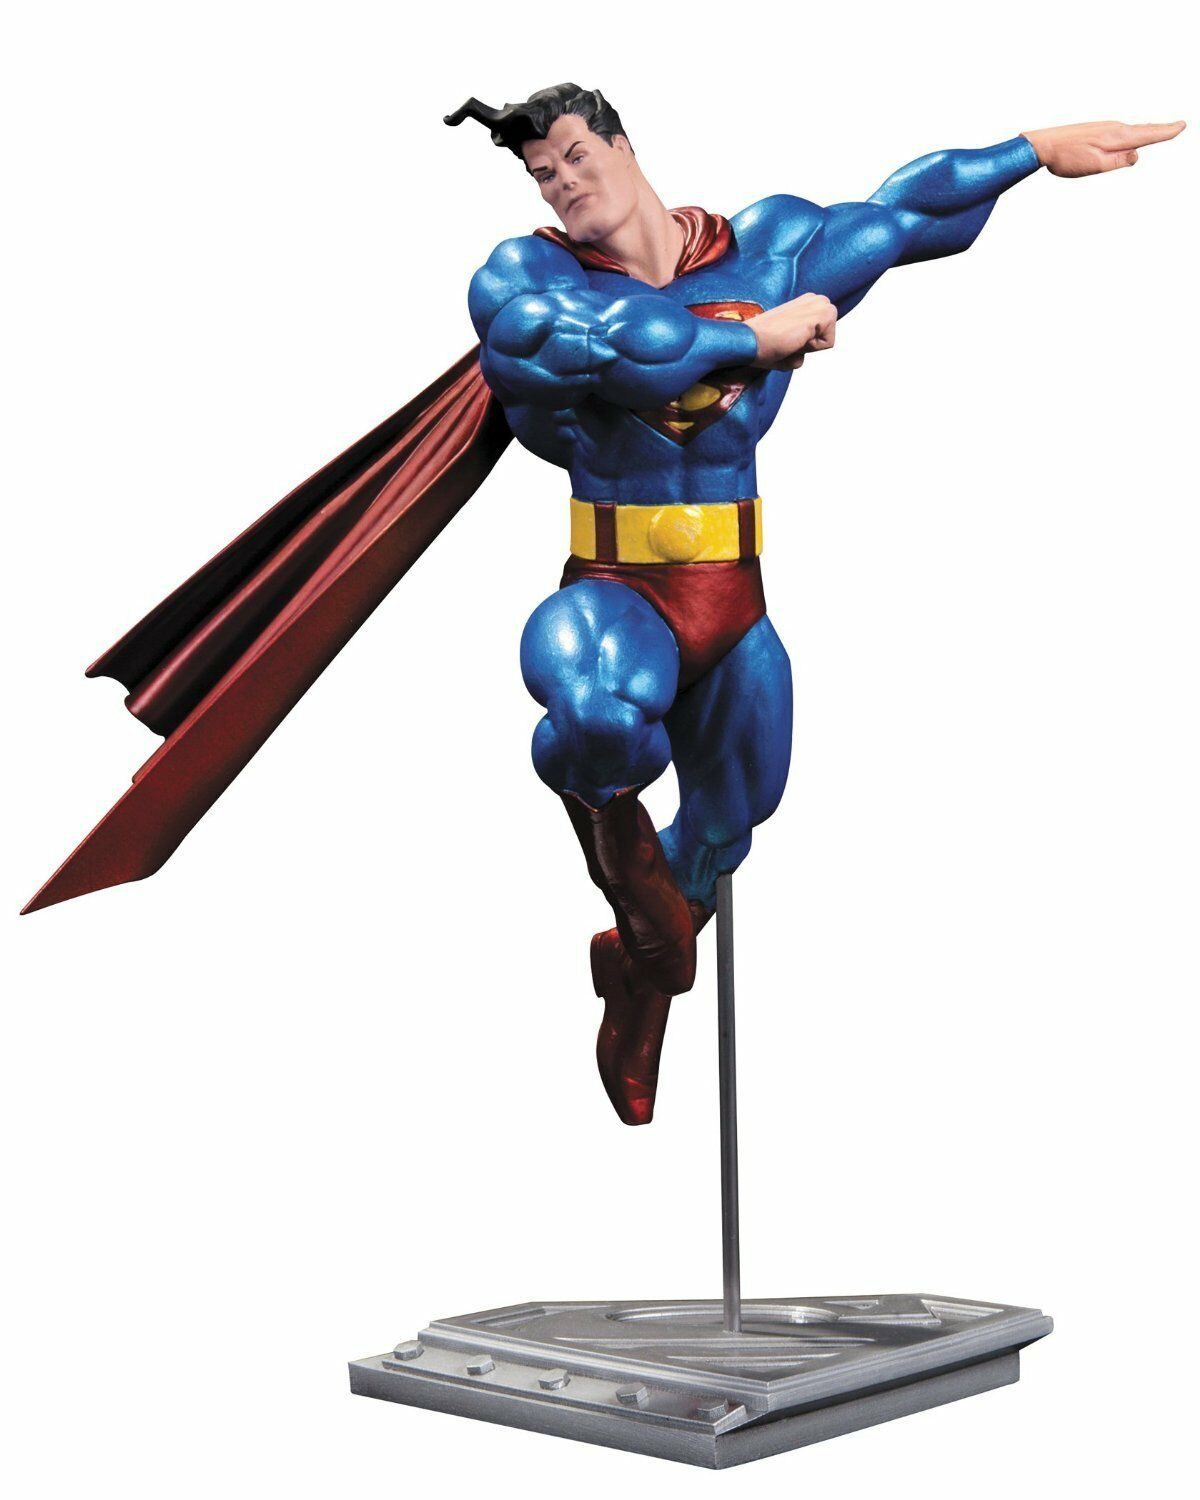 72746 Action Figure - SUPERMAN man of steel - by Frank Miller DC Collectibles